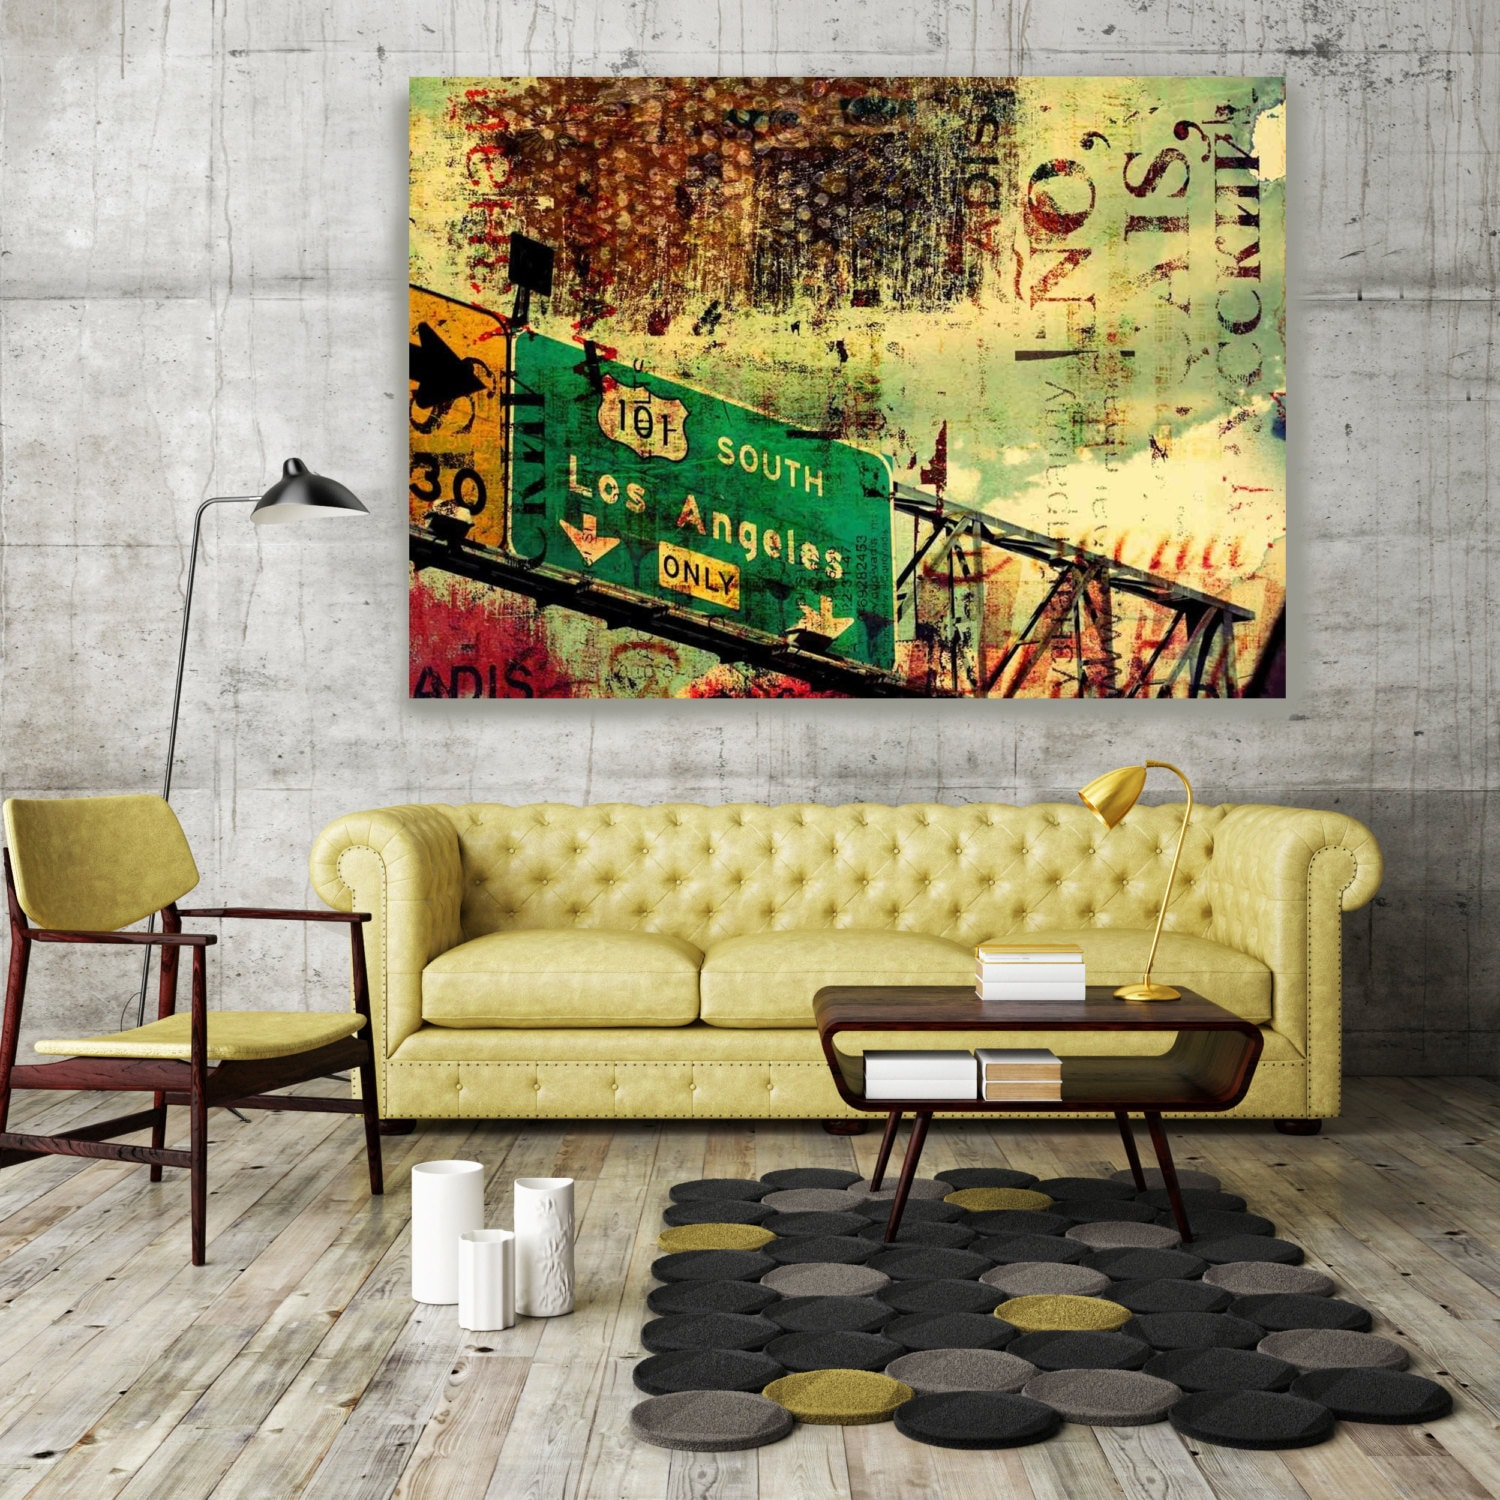 ORL-2233 101 South. Large Cityscape Canvas Art, Los Angeles Wall Art ...